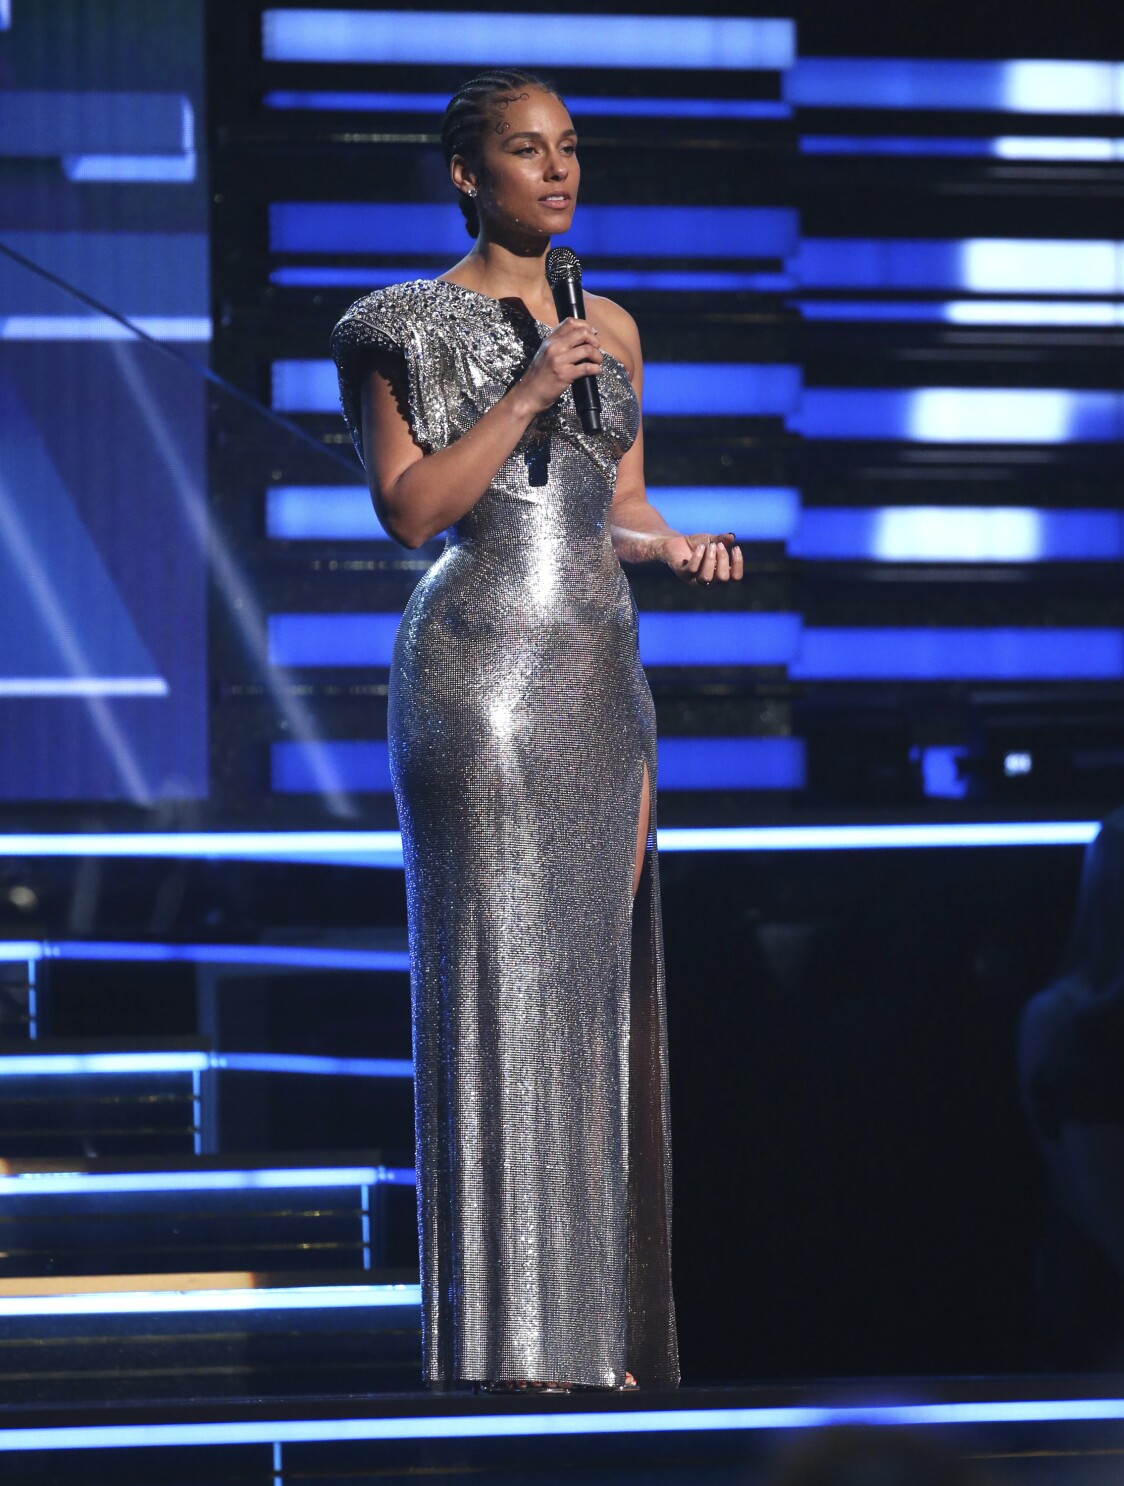 Analysis Grammy Awards Weather Firestorm Of Controversy As Host Alicia Keys Executes A Deft Balancing Act The San Diego Union Tribune